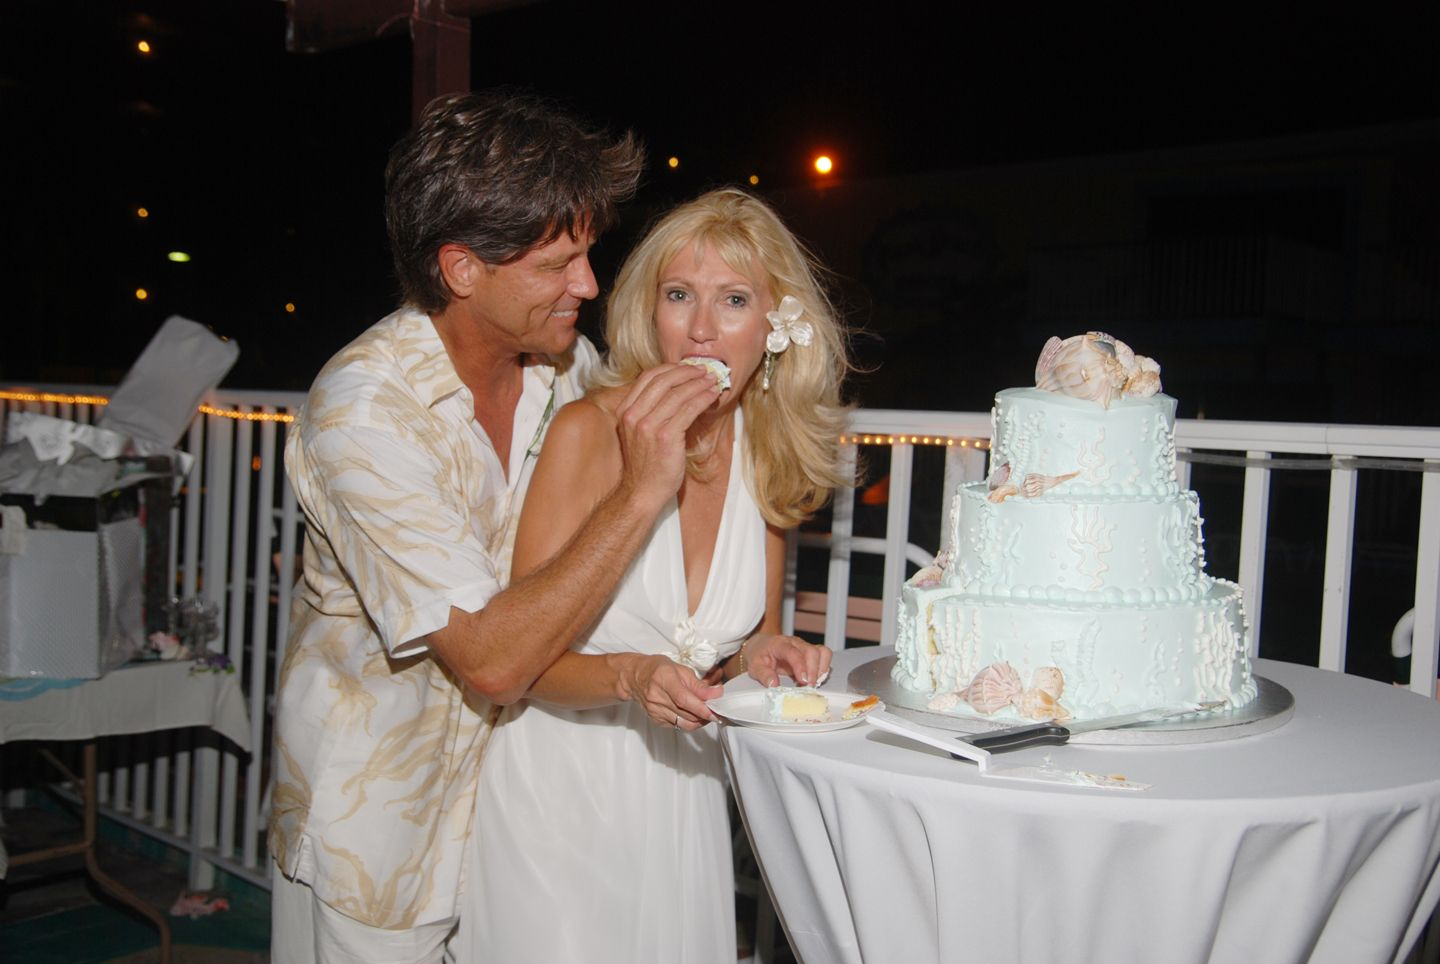 Intimate destination weddings are beautiful with the Plaza Beach Resorts hosting in St Pete Beach, Florida